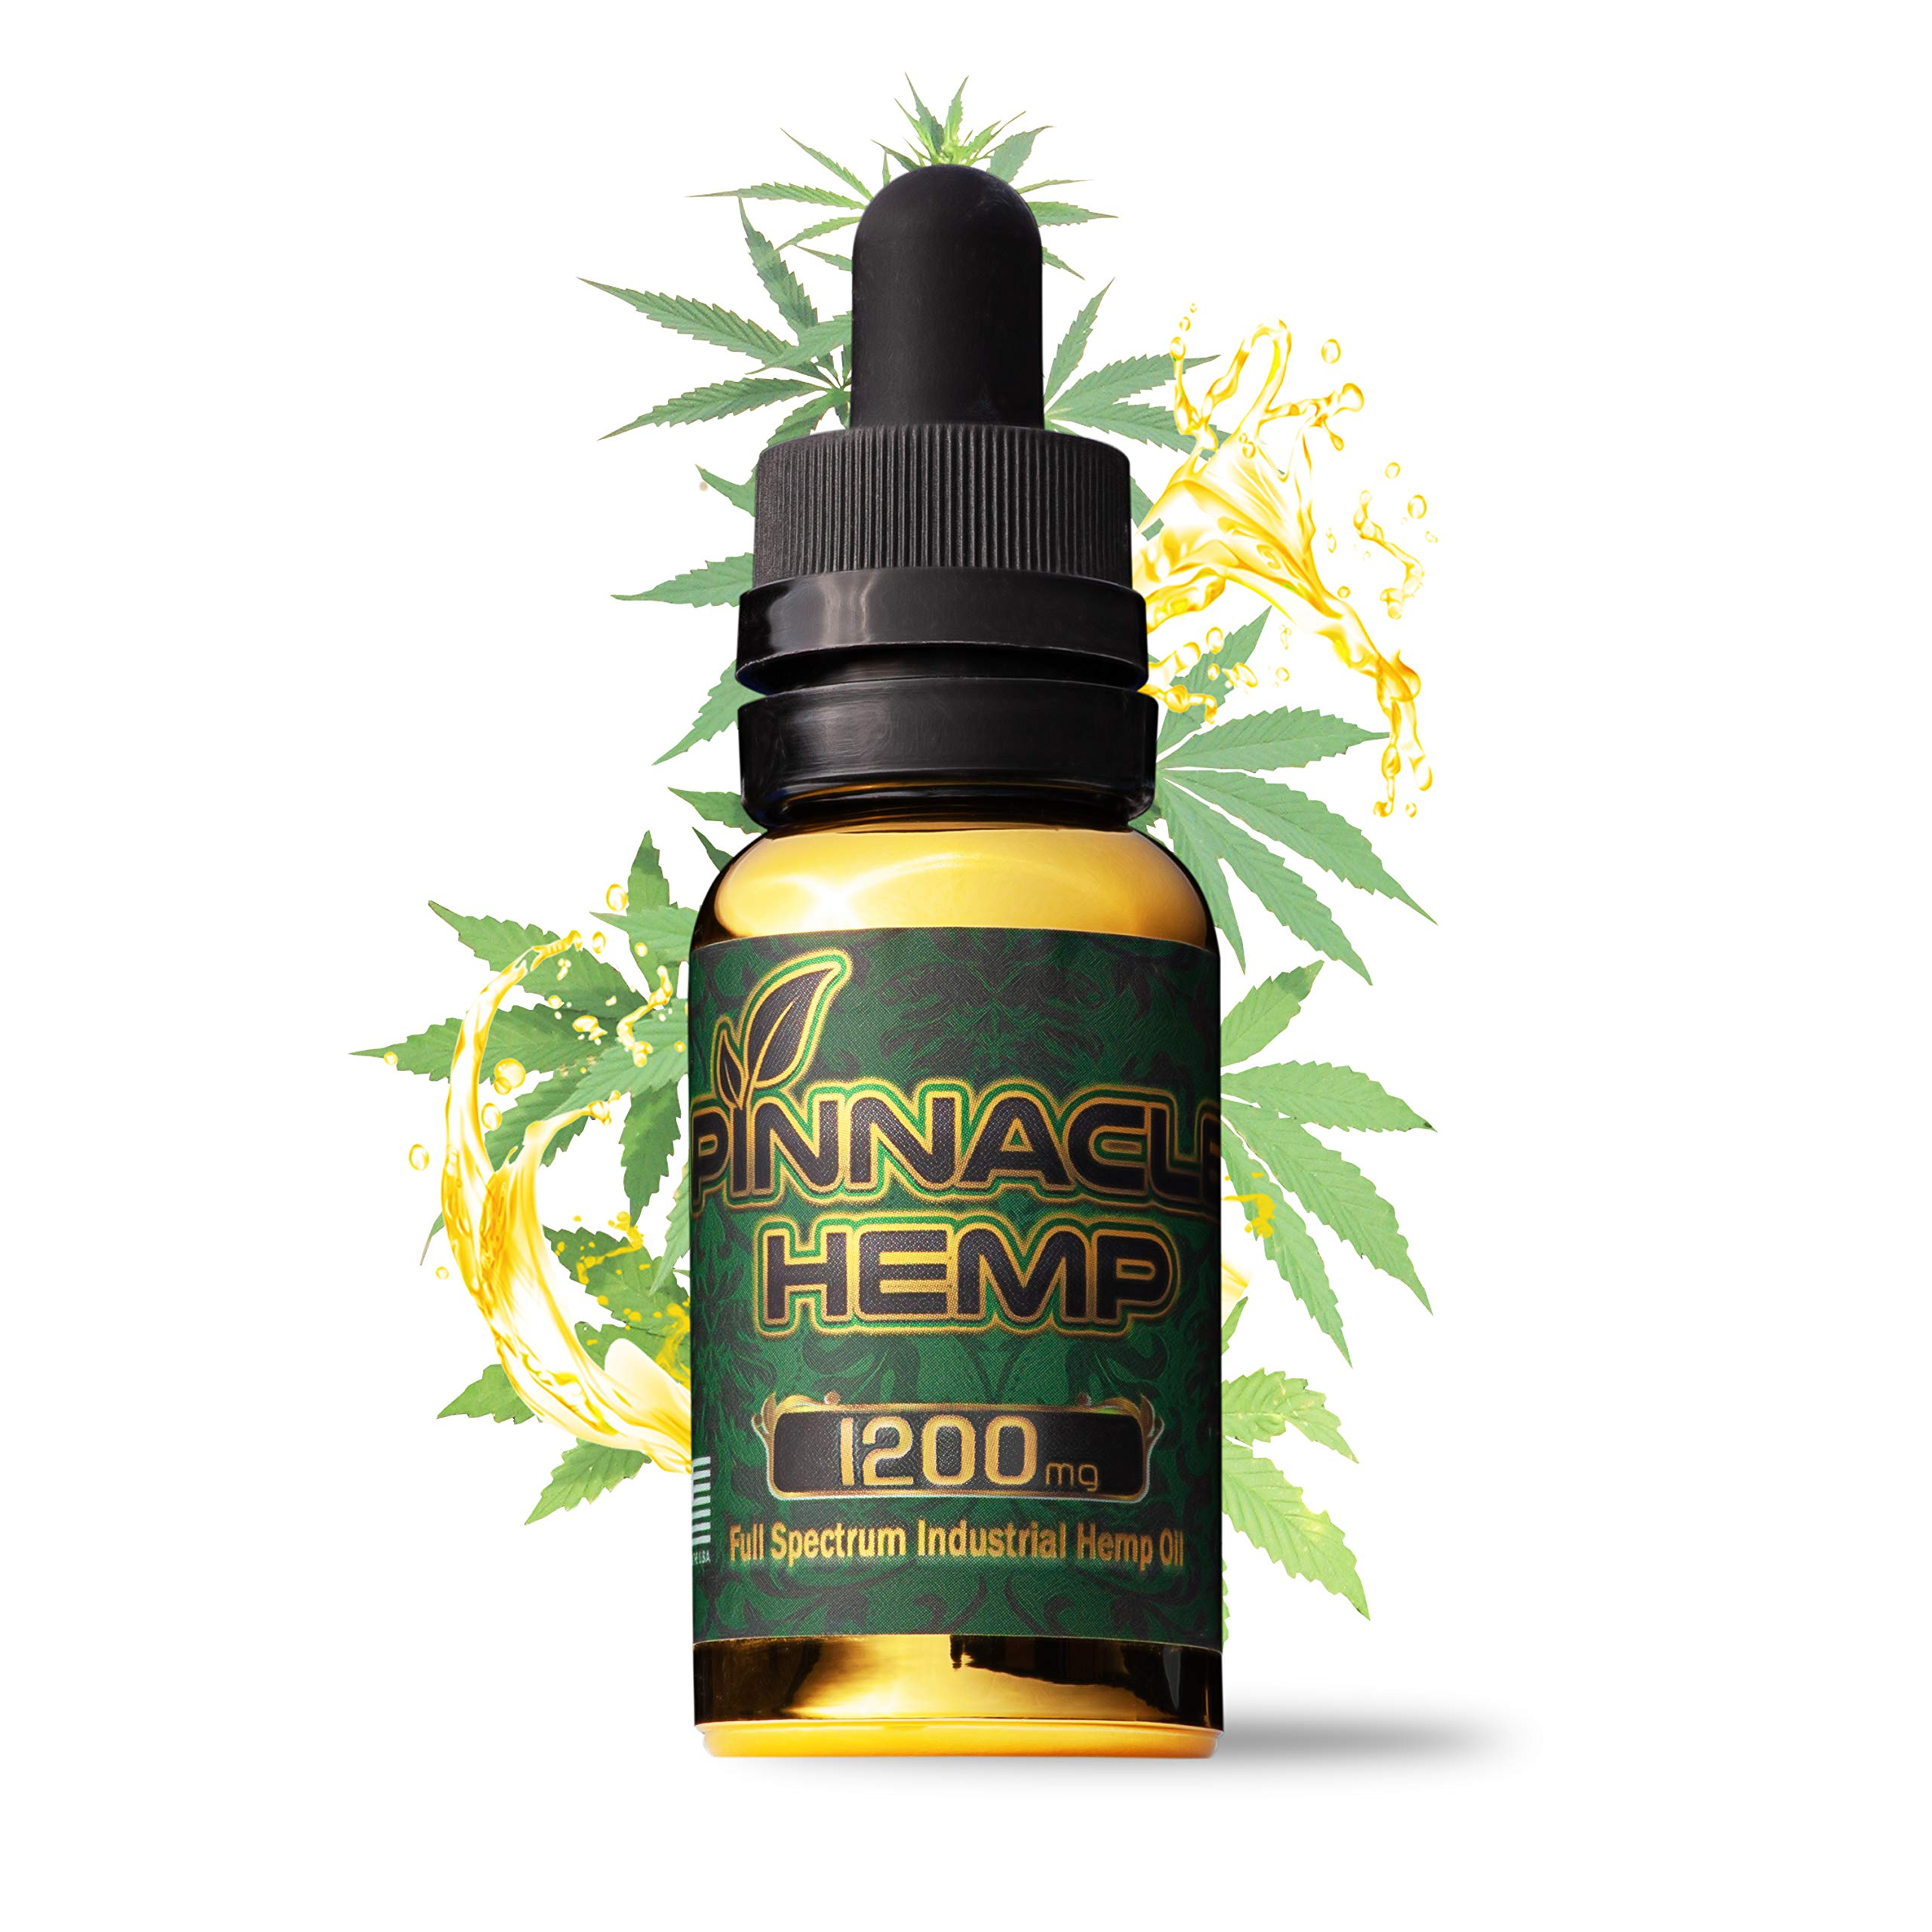 Pinnacle Hemp | #1 Hemp Oil Full Spectrum Stress Support, Anti Anxiety, Sleep Supplements Herbal Drops Natural Anti Inflammatory Drops (30ml 1200mg)